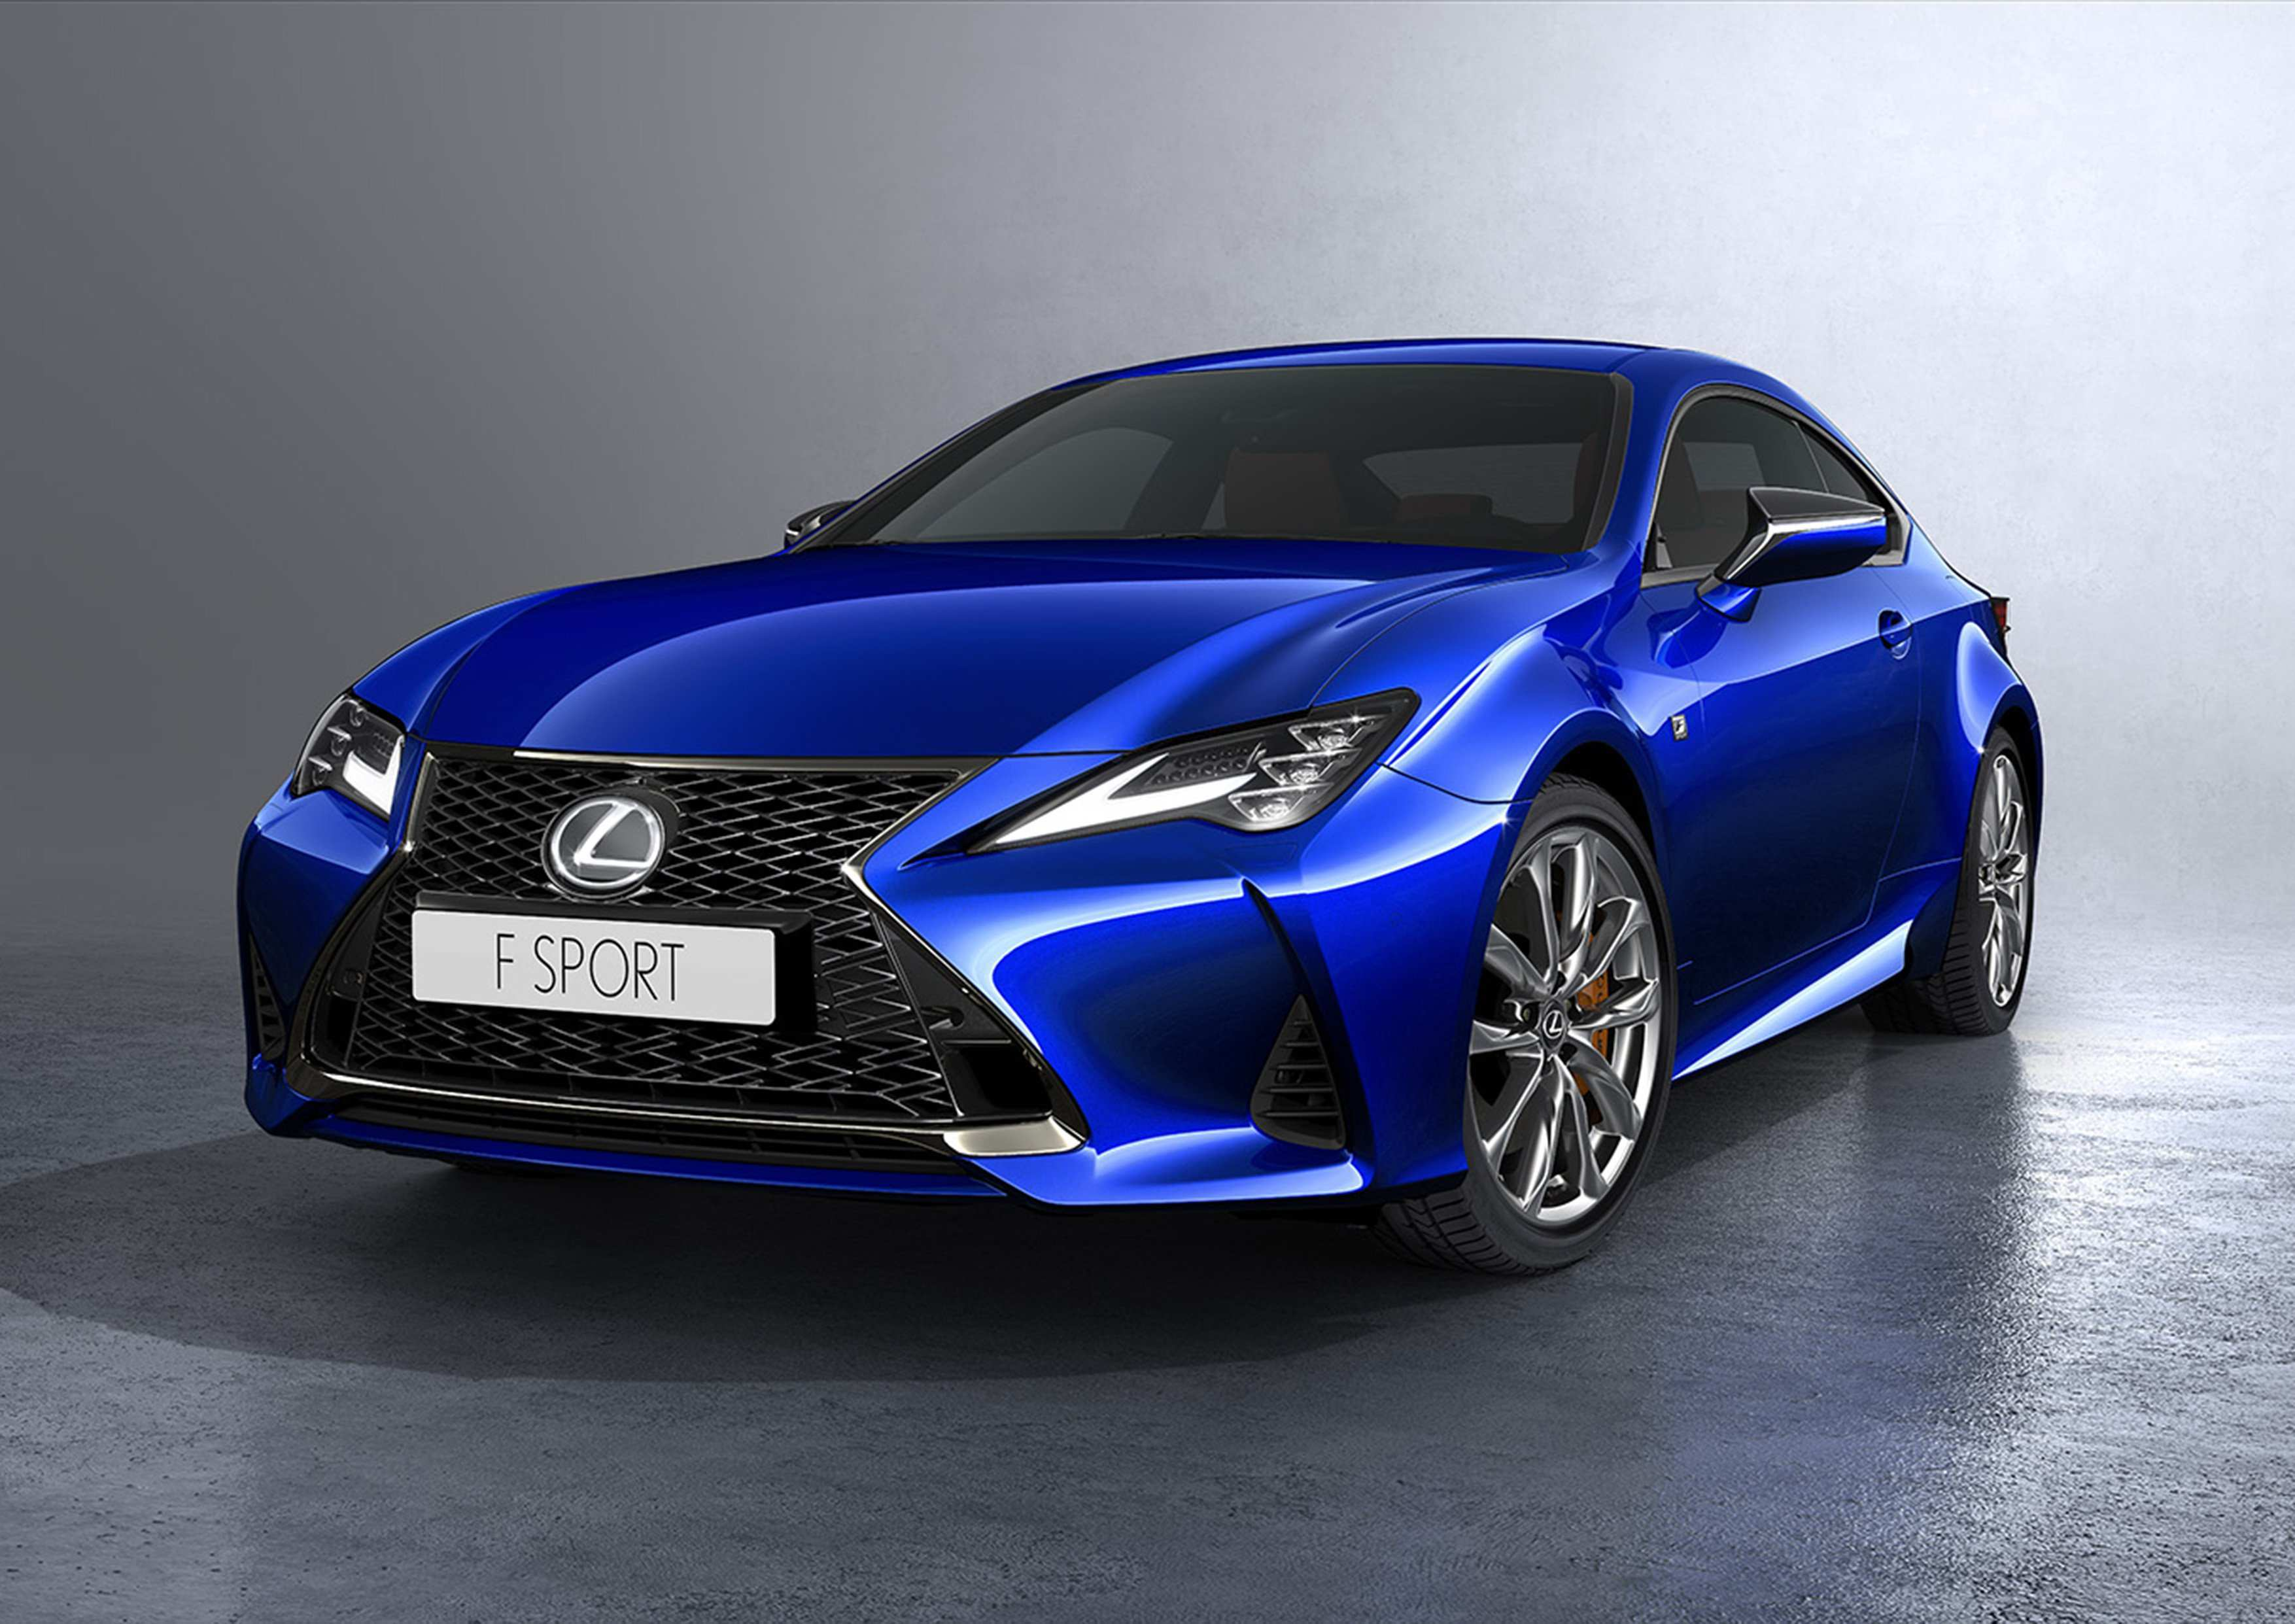 86 The Pictures Of 2020 Lexus Exterior and Interior for Pictures Of 2020 Lexus